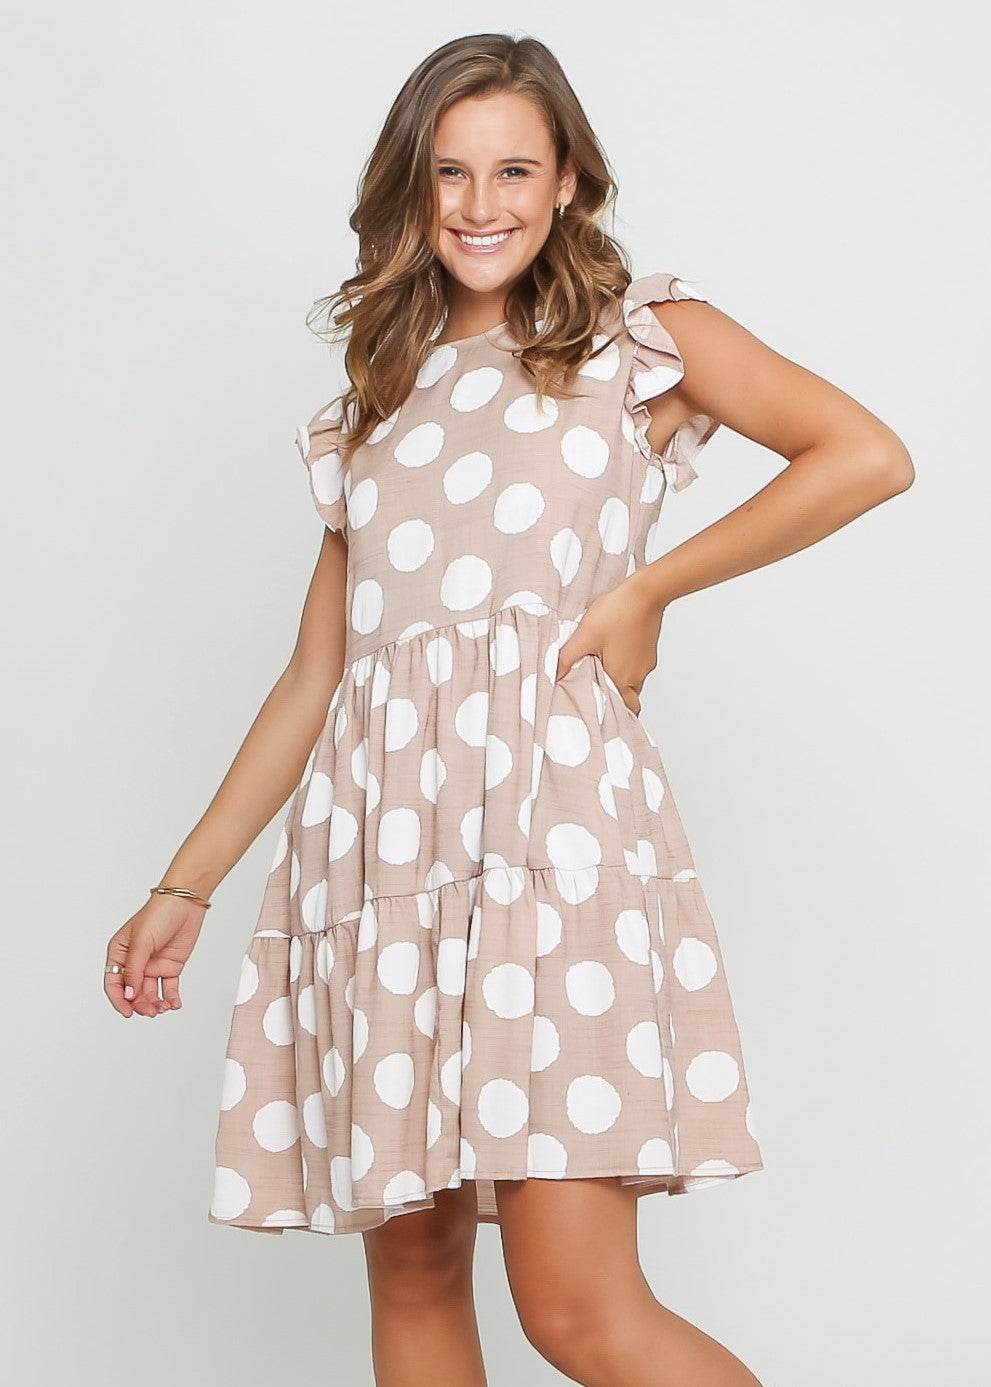 SHANLY DRESS - ROSE DOT - MARK DOWN MADNESS